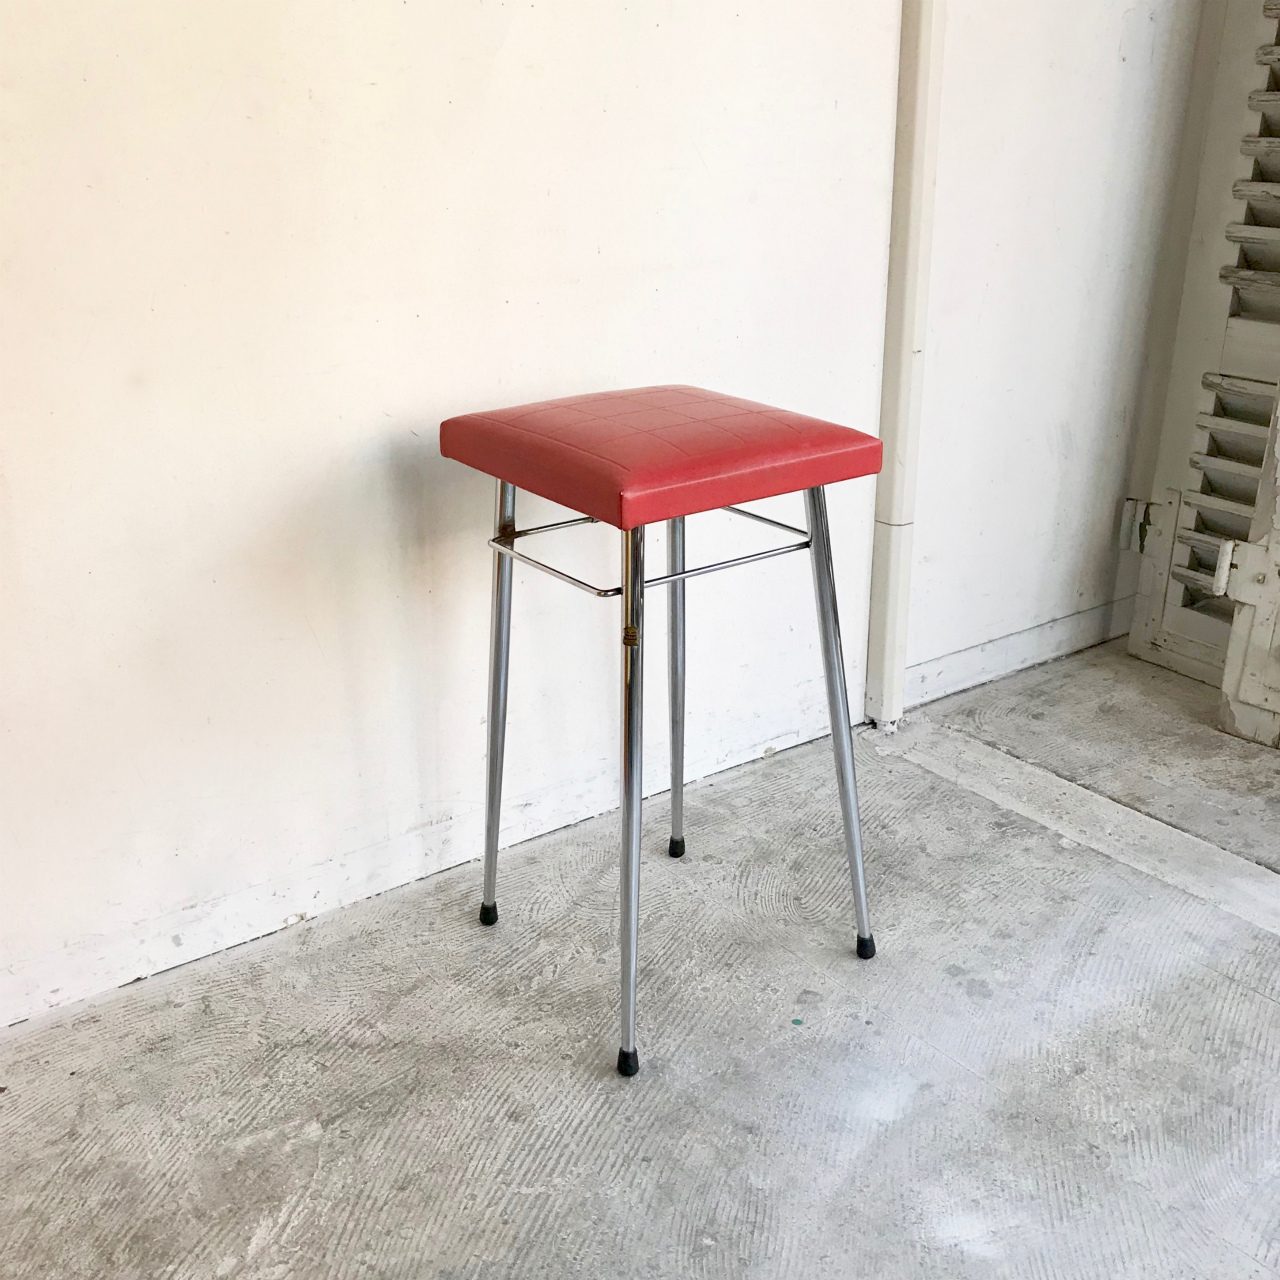 Super Brabantia Stool Red 60S Vintage Couscous Furniture Powered By Base Bralicious Painted Fabric Chair Ideas Braliciousco